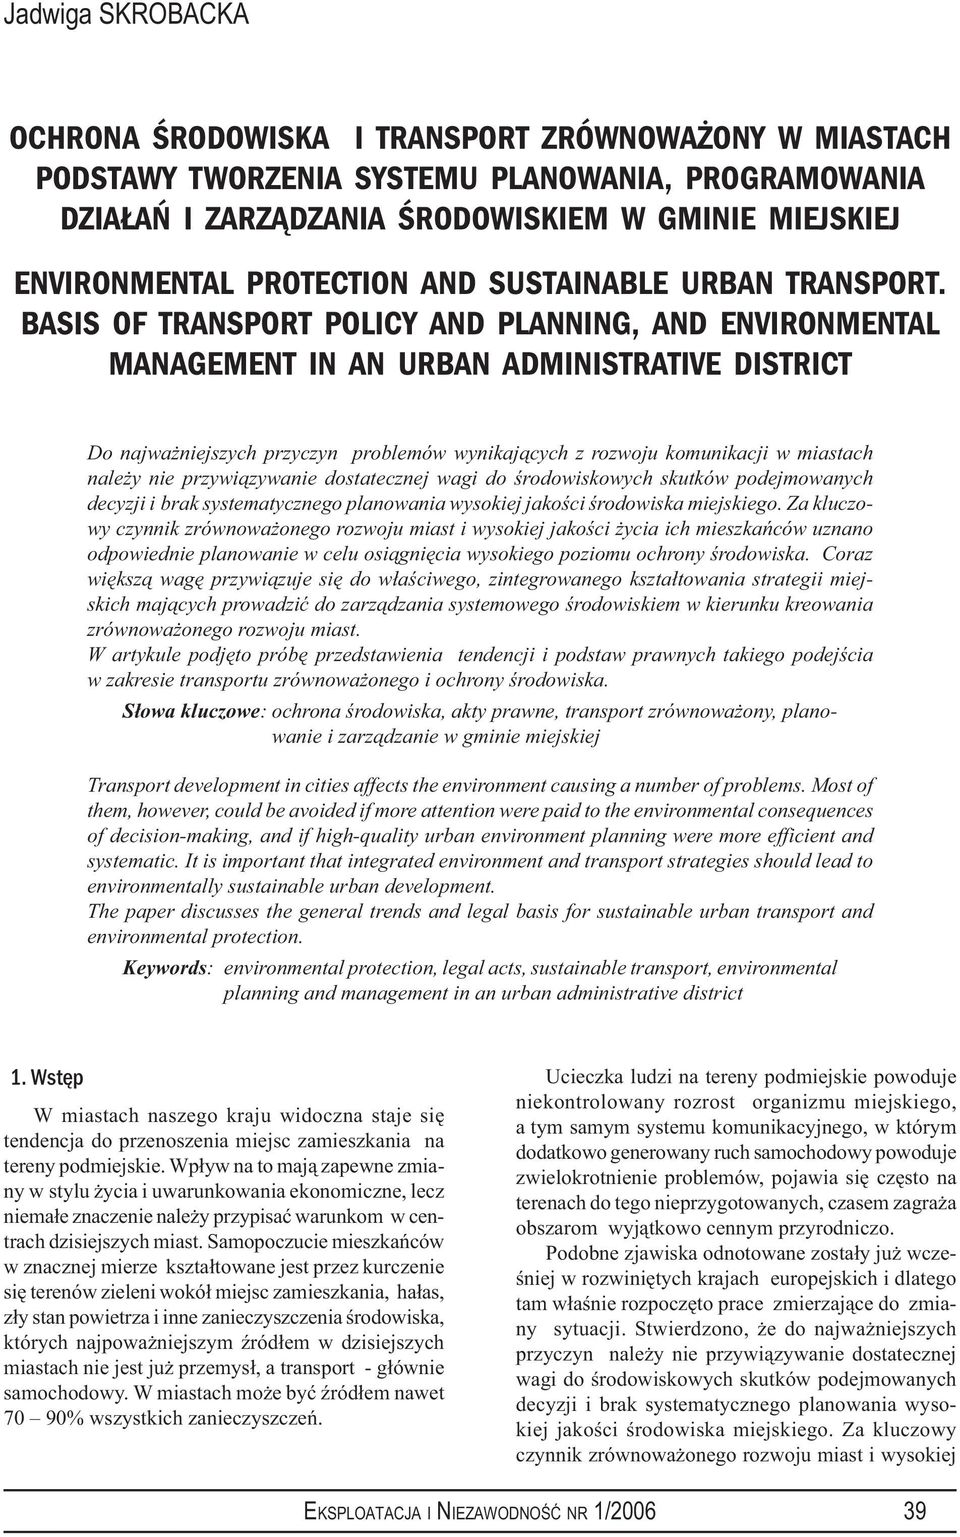 BASIS OF TRANSPORT POLICY AND PLANNING, AND ENVIRONMENTAL MANAGEMENT IN AN URBAN ADMINISTRATIVE DISTRICT Do najważniejszych przyczyn problemów wynikających z rozwoju komunikacji w miastach należy nie